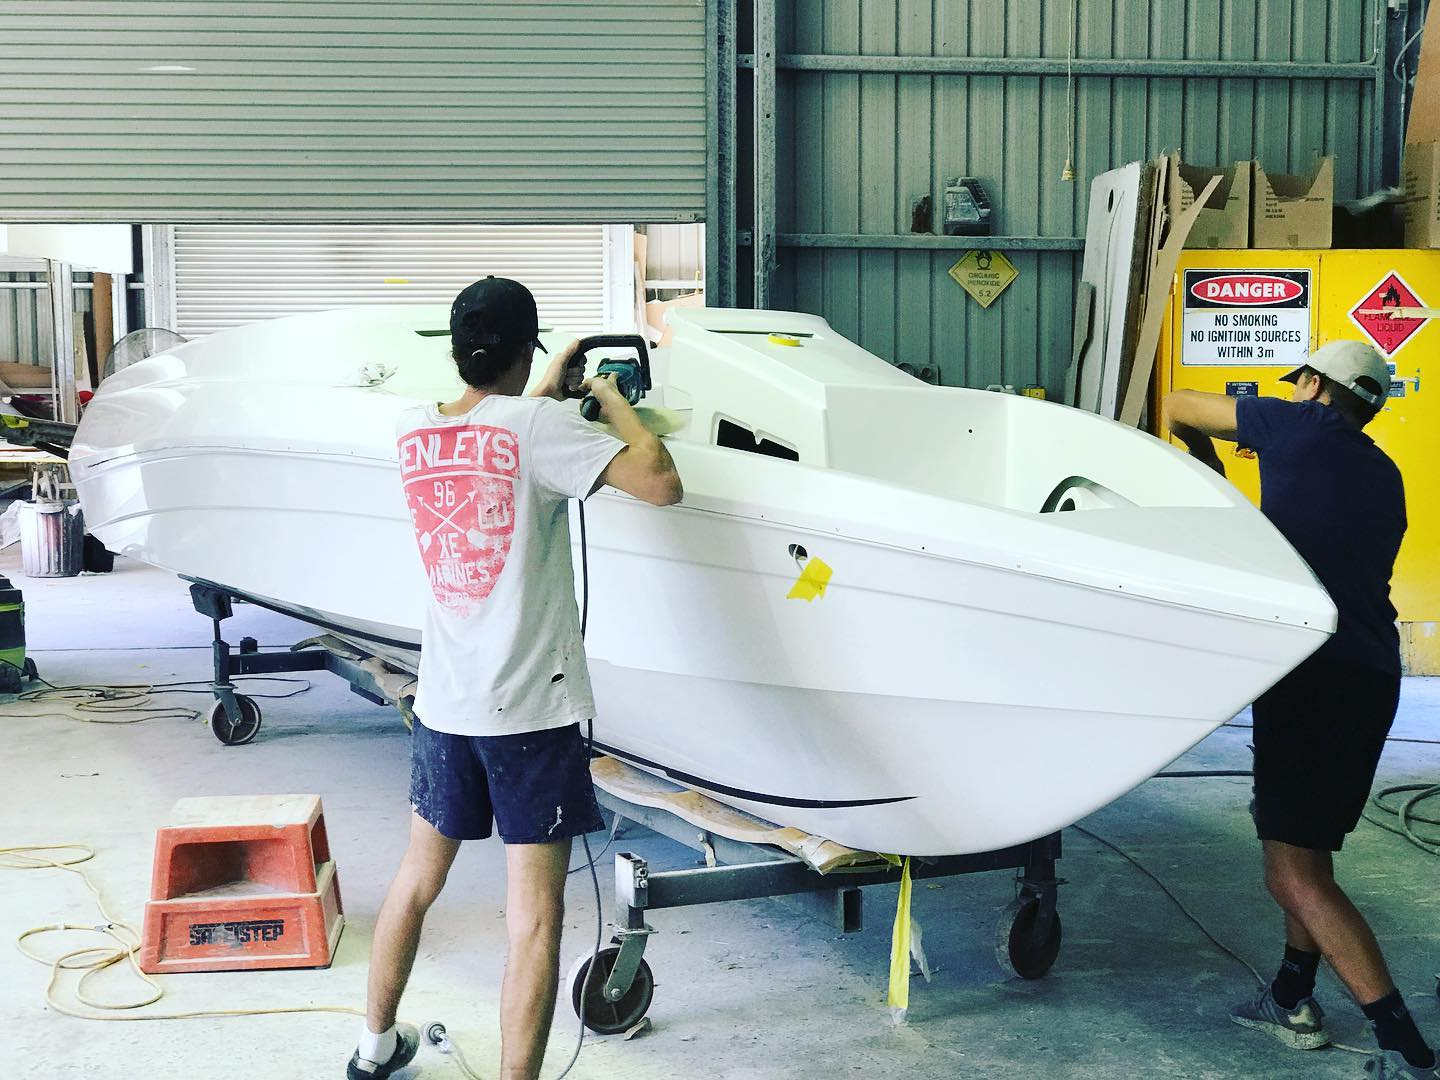 Workshop News: May 2020 – Force F24B Build